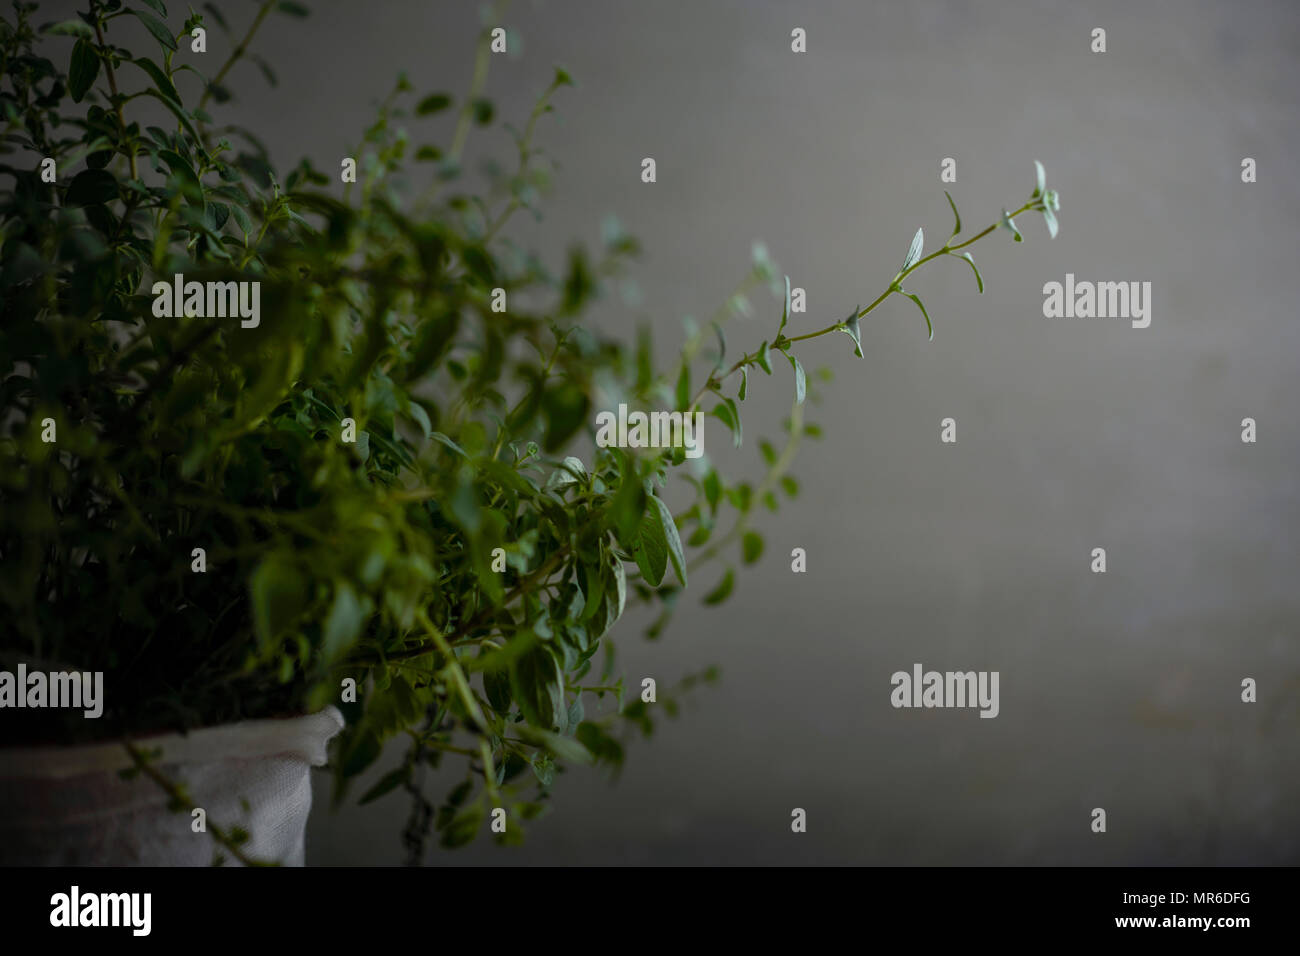 Detail shot of a potted oregano plant with beautiful long sprigs on a moody gray background. - Stock Image